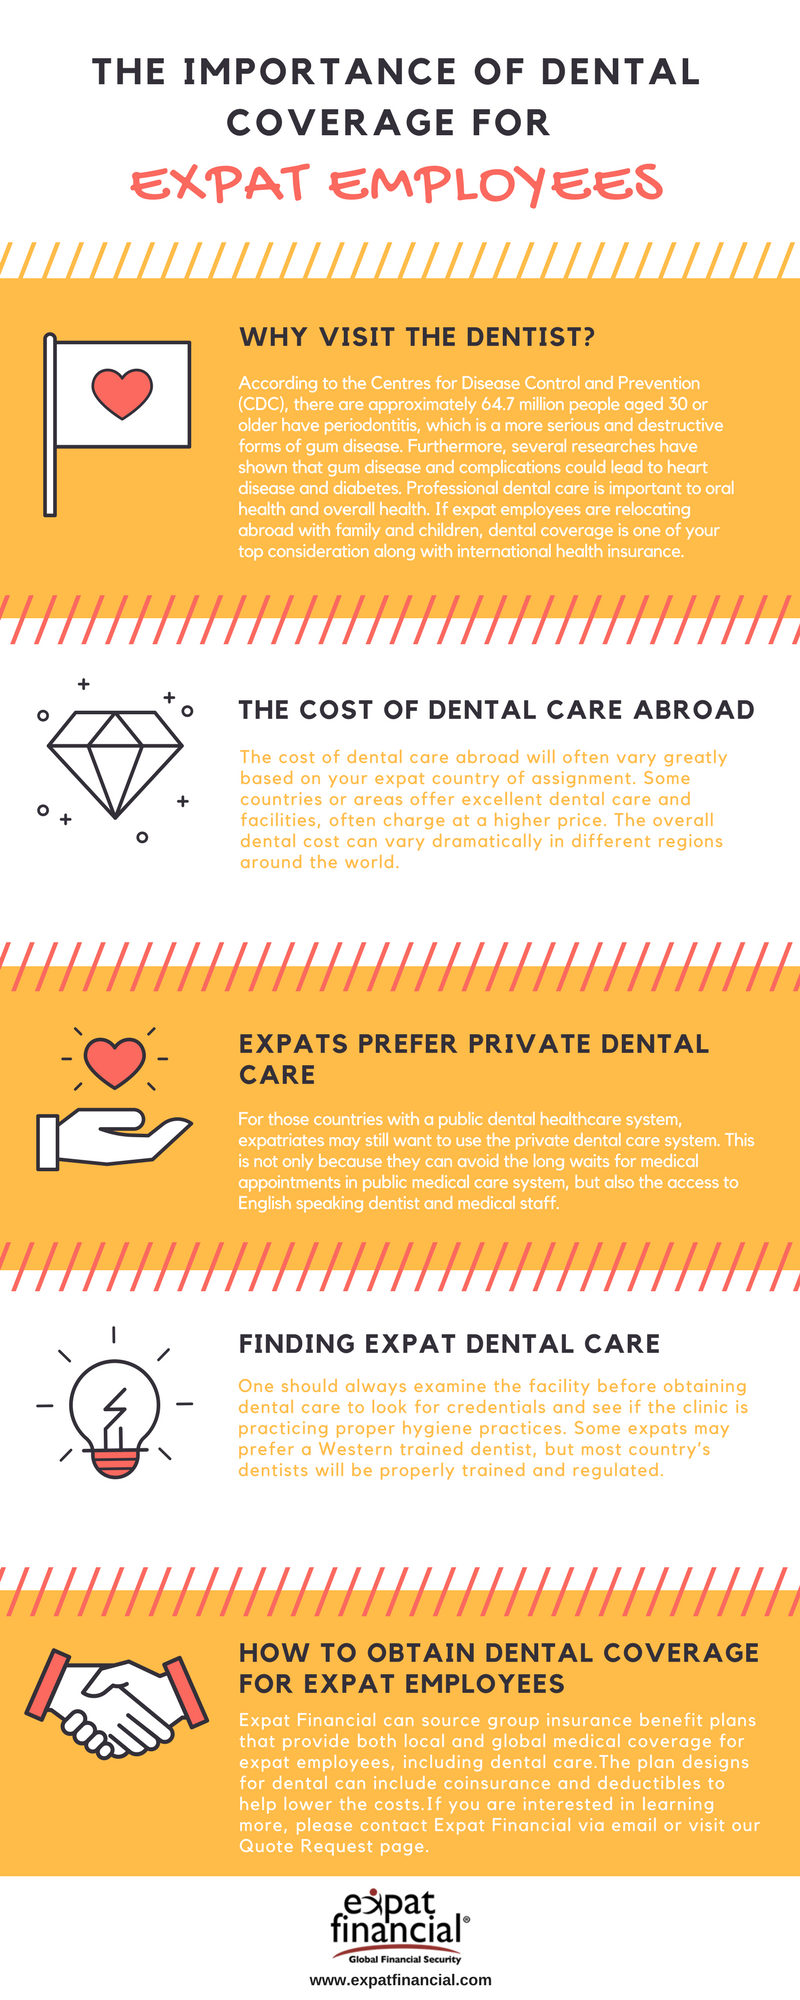 Dental Coverage for Expats